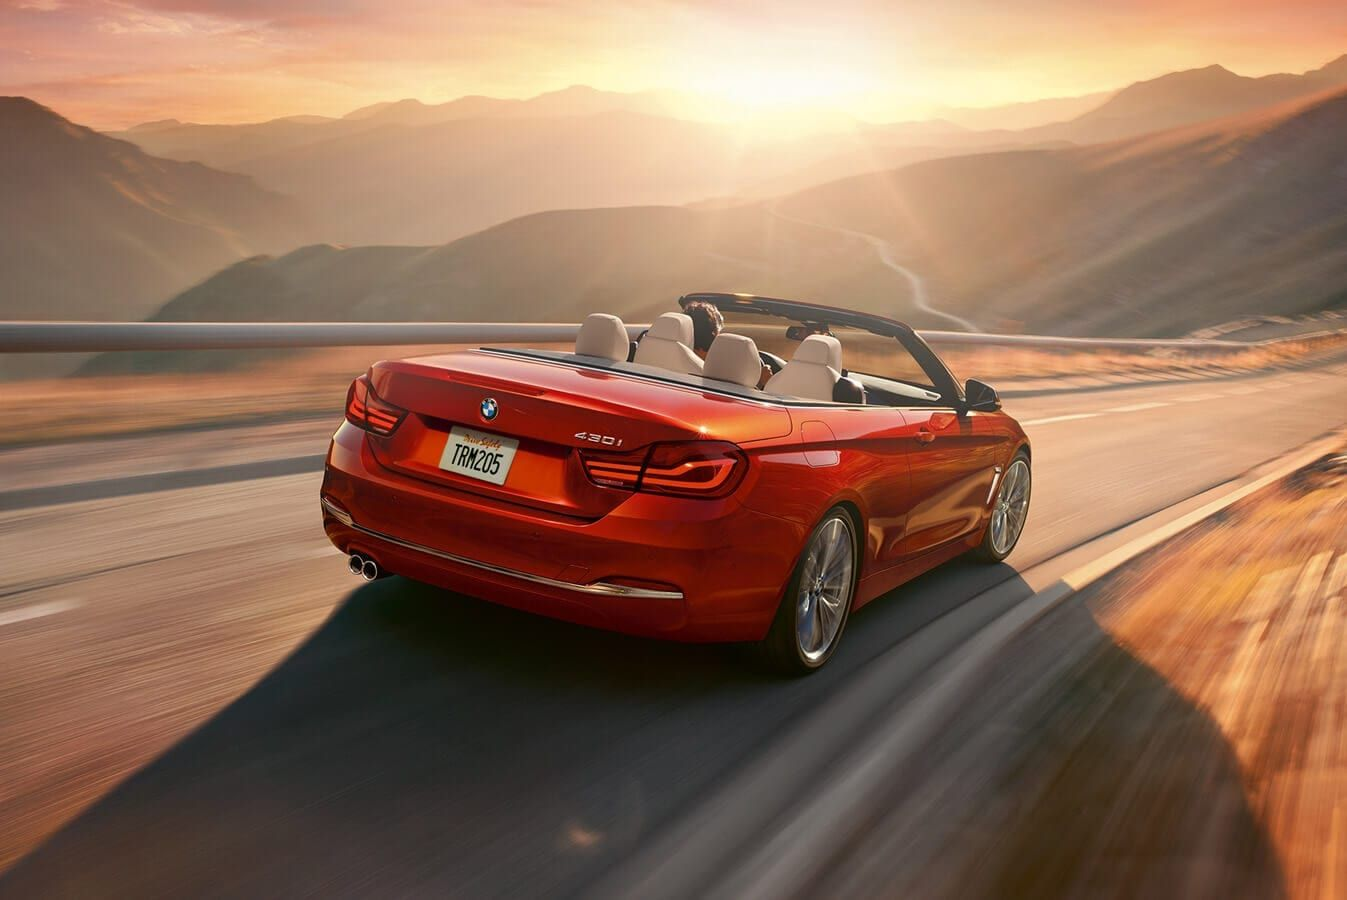 Introducing The 2020 Bmw 430i Xdrive Coming Soon To South Orlando The 2020 Bmw 430i Xdrive Is The Epitome Of Luxury And A Gre In 2020 Bmw Bmw Convertible Winter Park